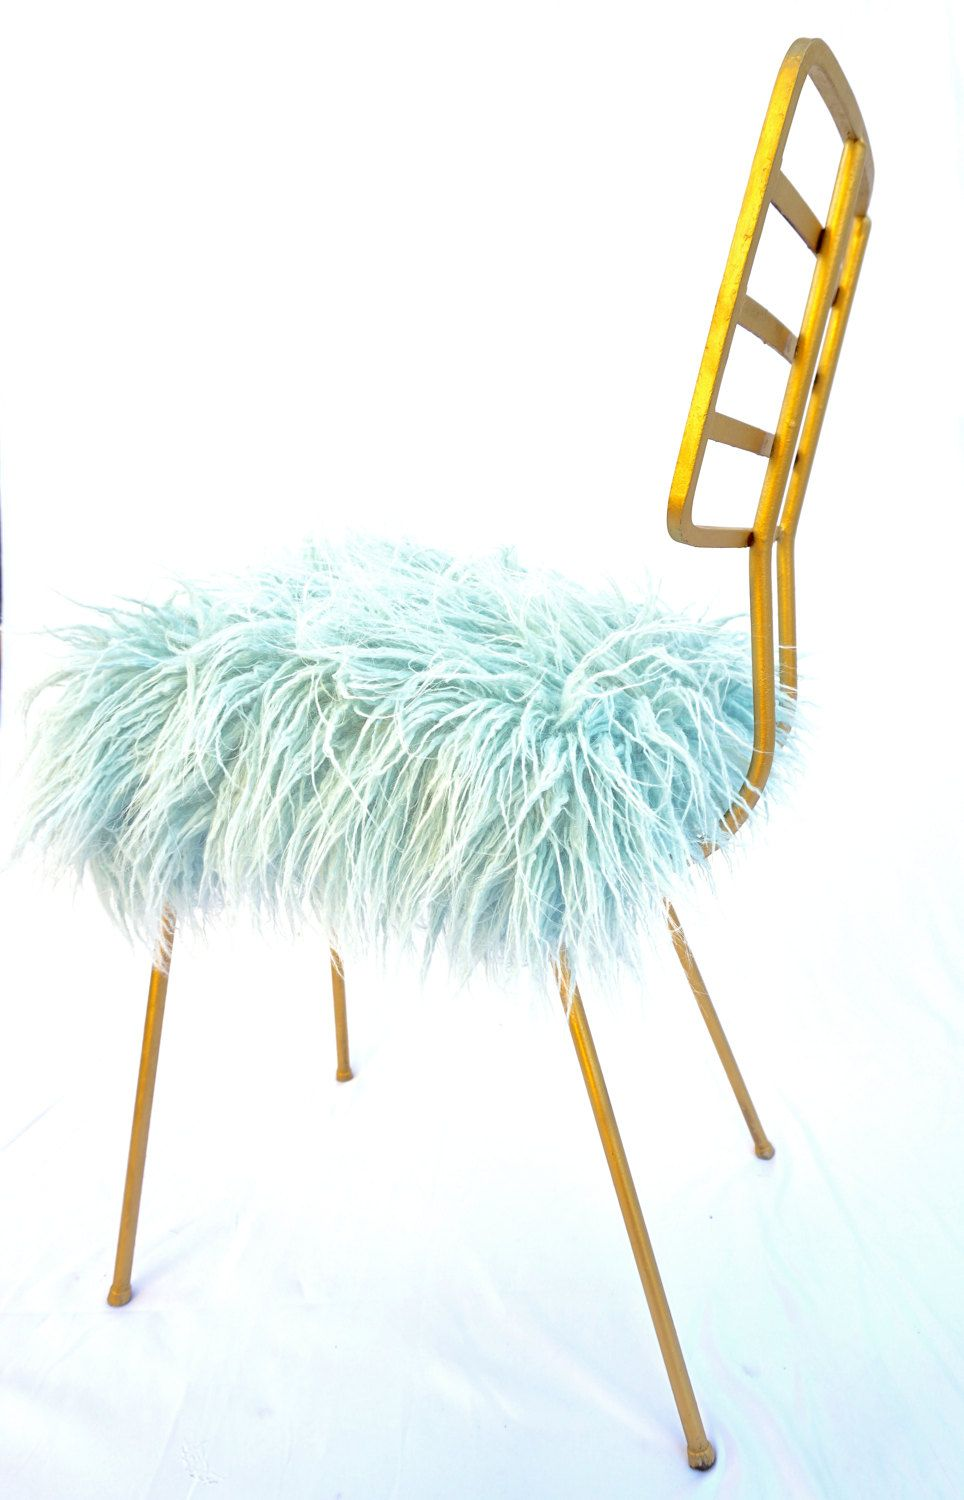 Mid Century Modern Gold Metal Light Blue Faux Fur Chair Glam Space Age Seating Arthur Umanoff Vanity Stool Desk Nursery Chair Metal Lighting Chair